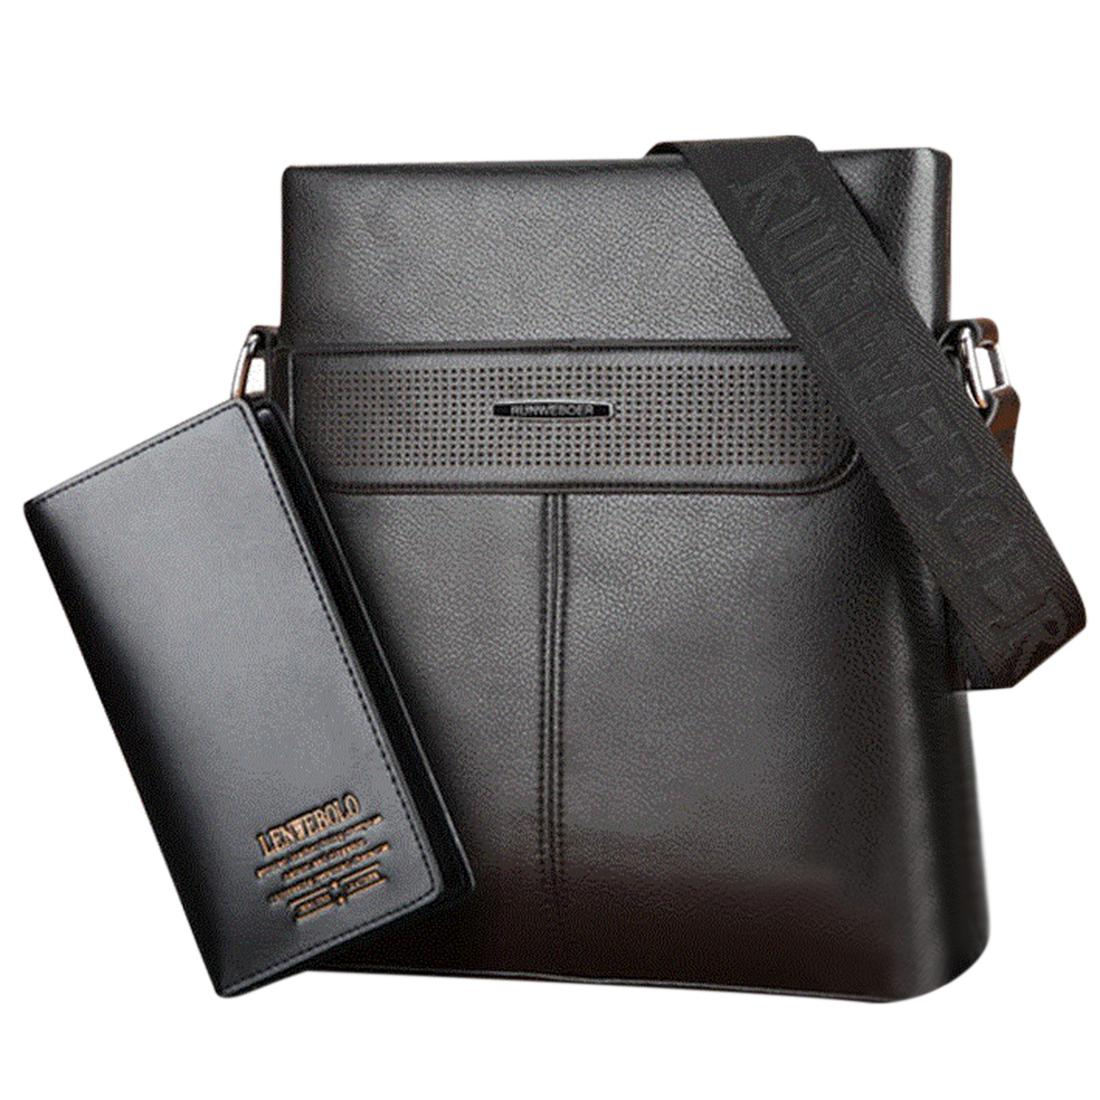 Two-piece Suit Fashion Male Messenger Bag Business Leisure Leather Bag with High-end Billfold - Black